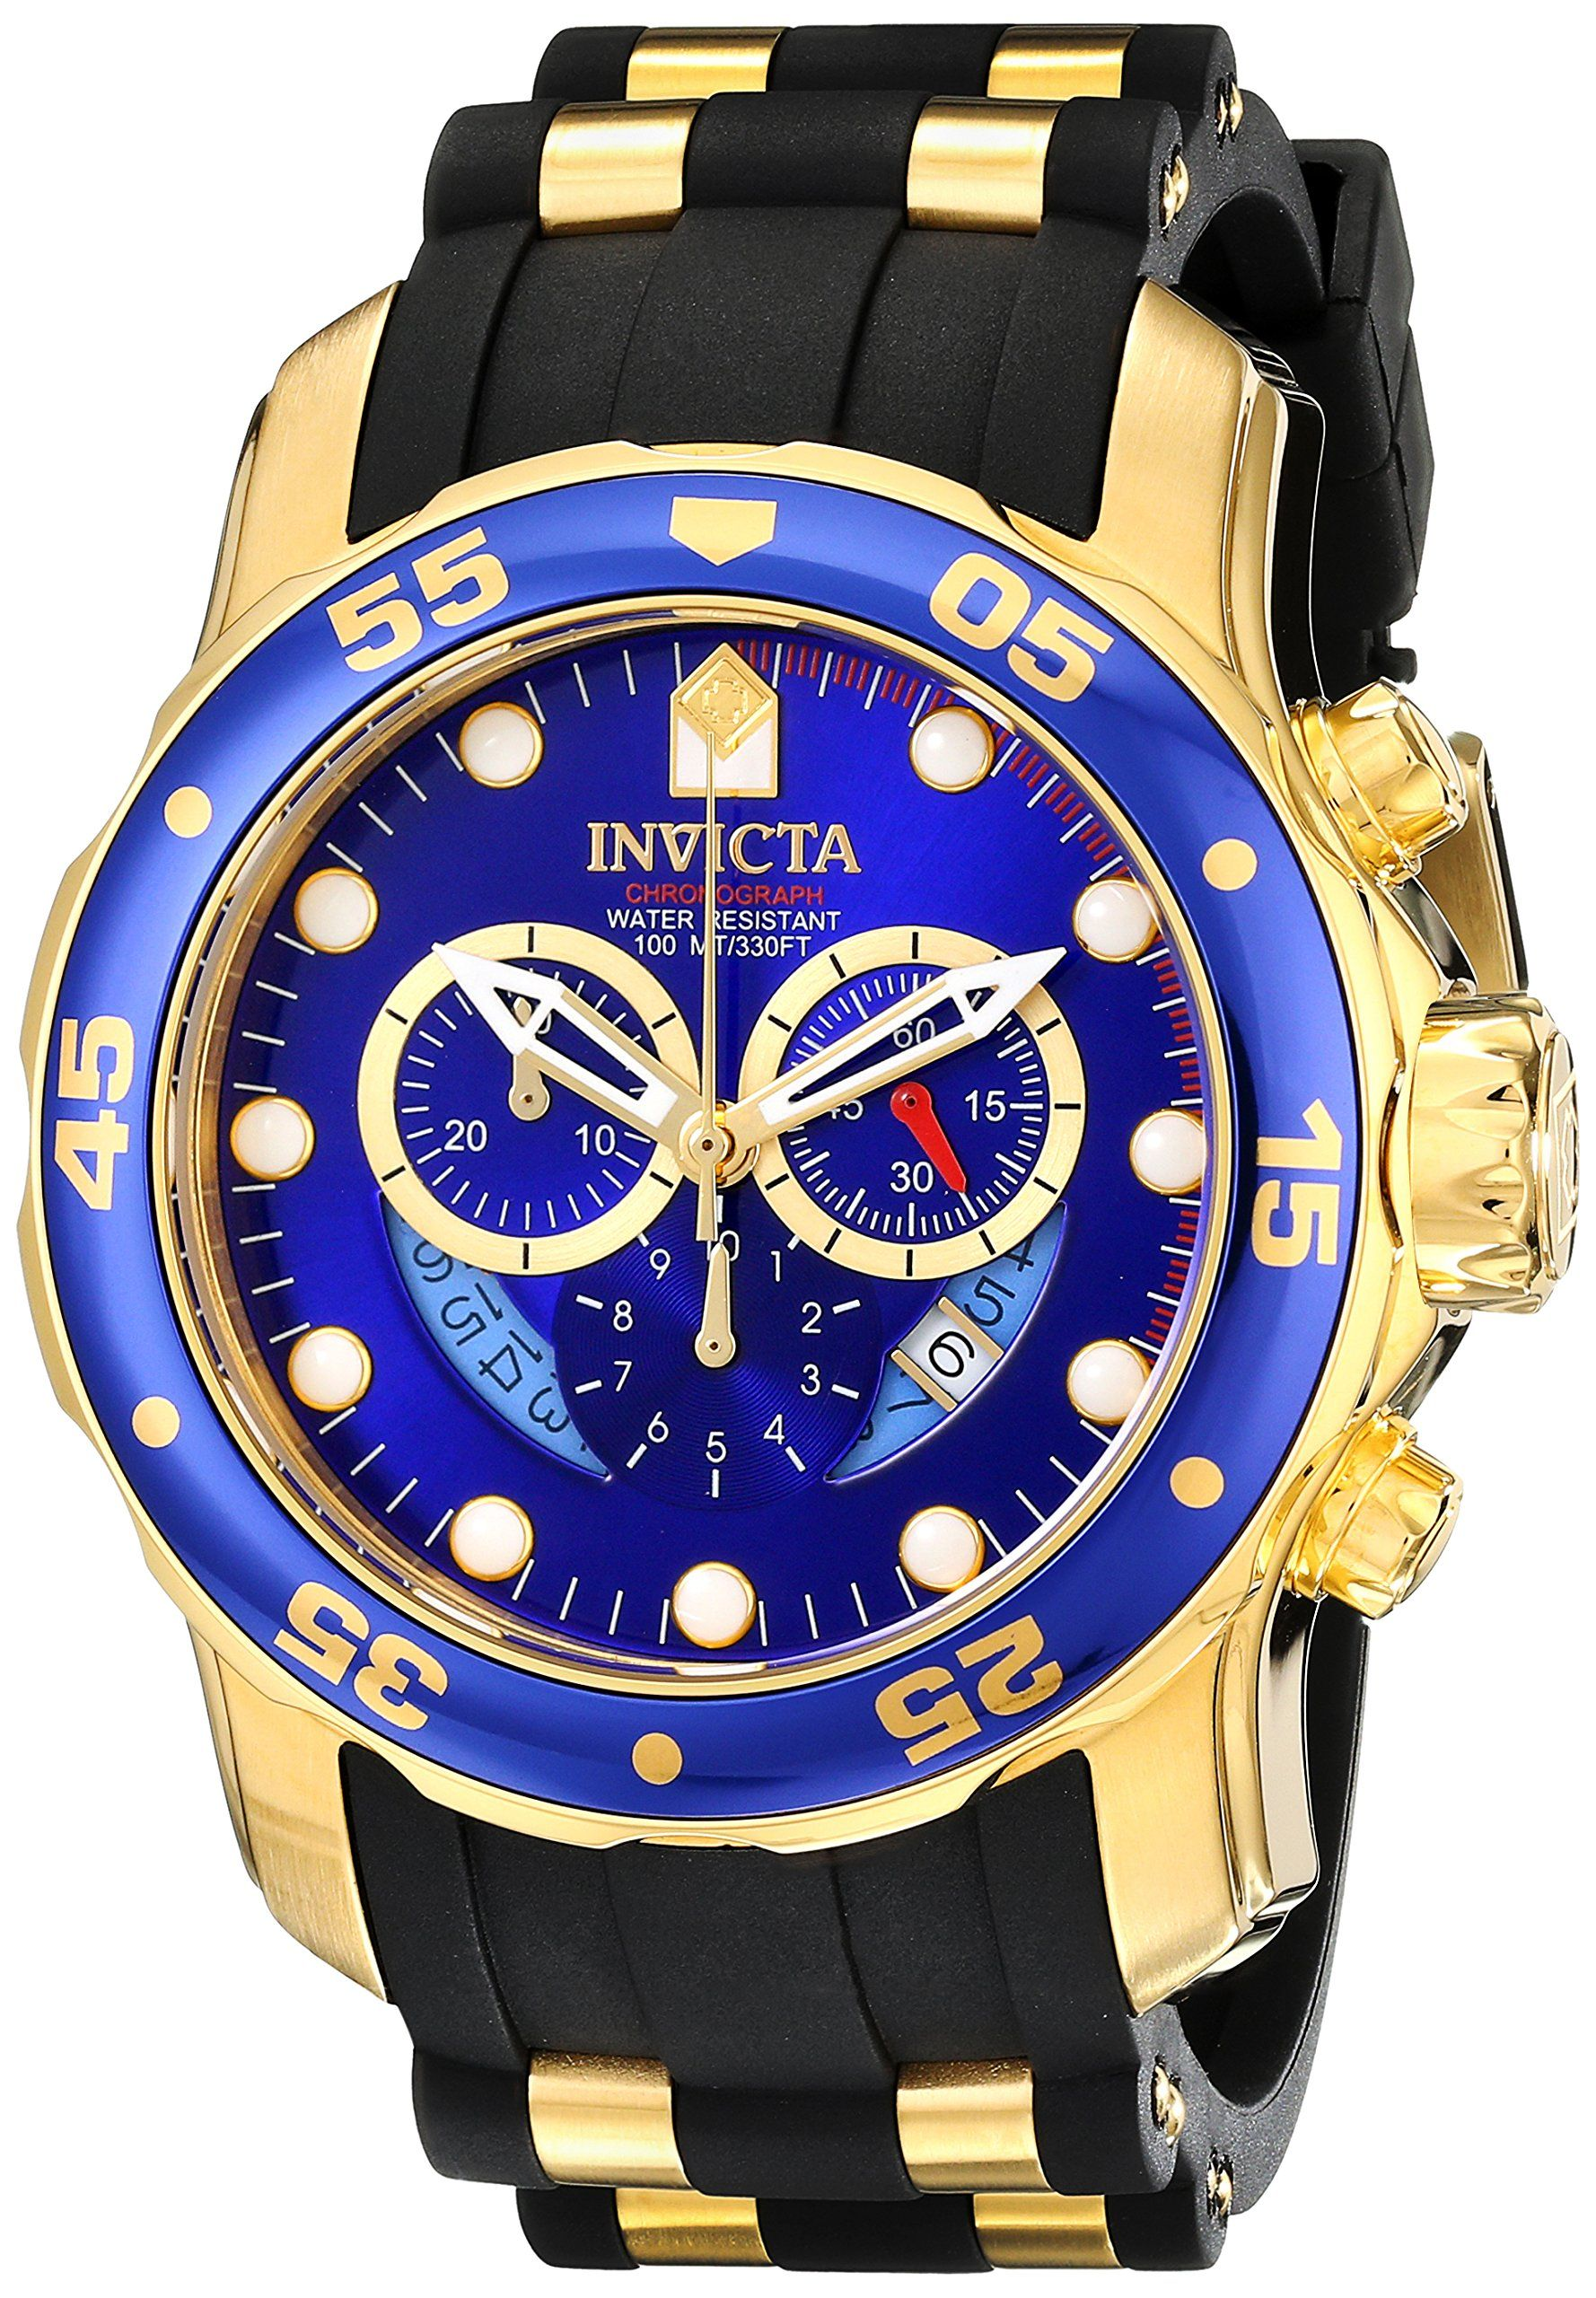 a81677913b2 Invicta Men s 6983 Pro Diver Collection Chronograph Blue Dial Black  Polyurethane Watch